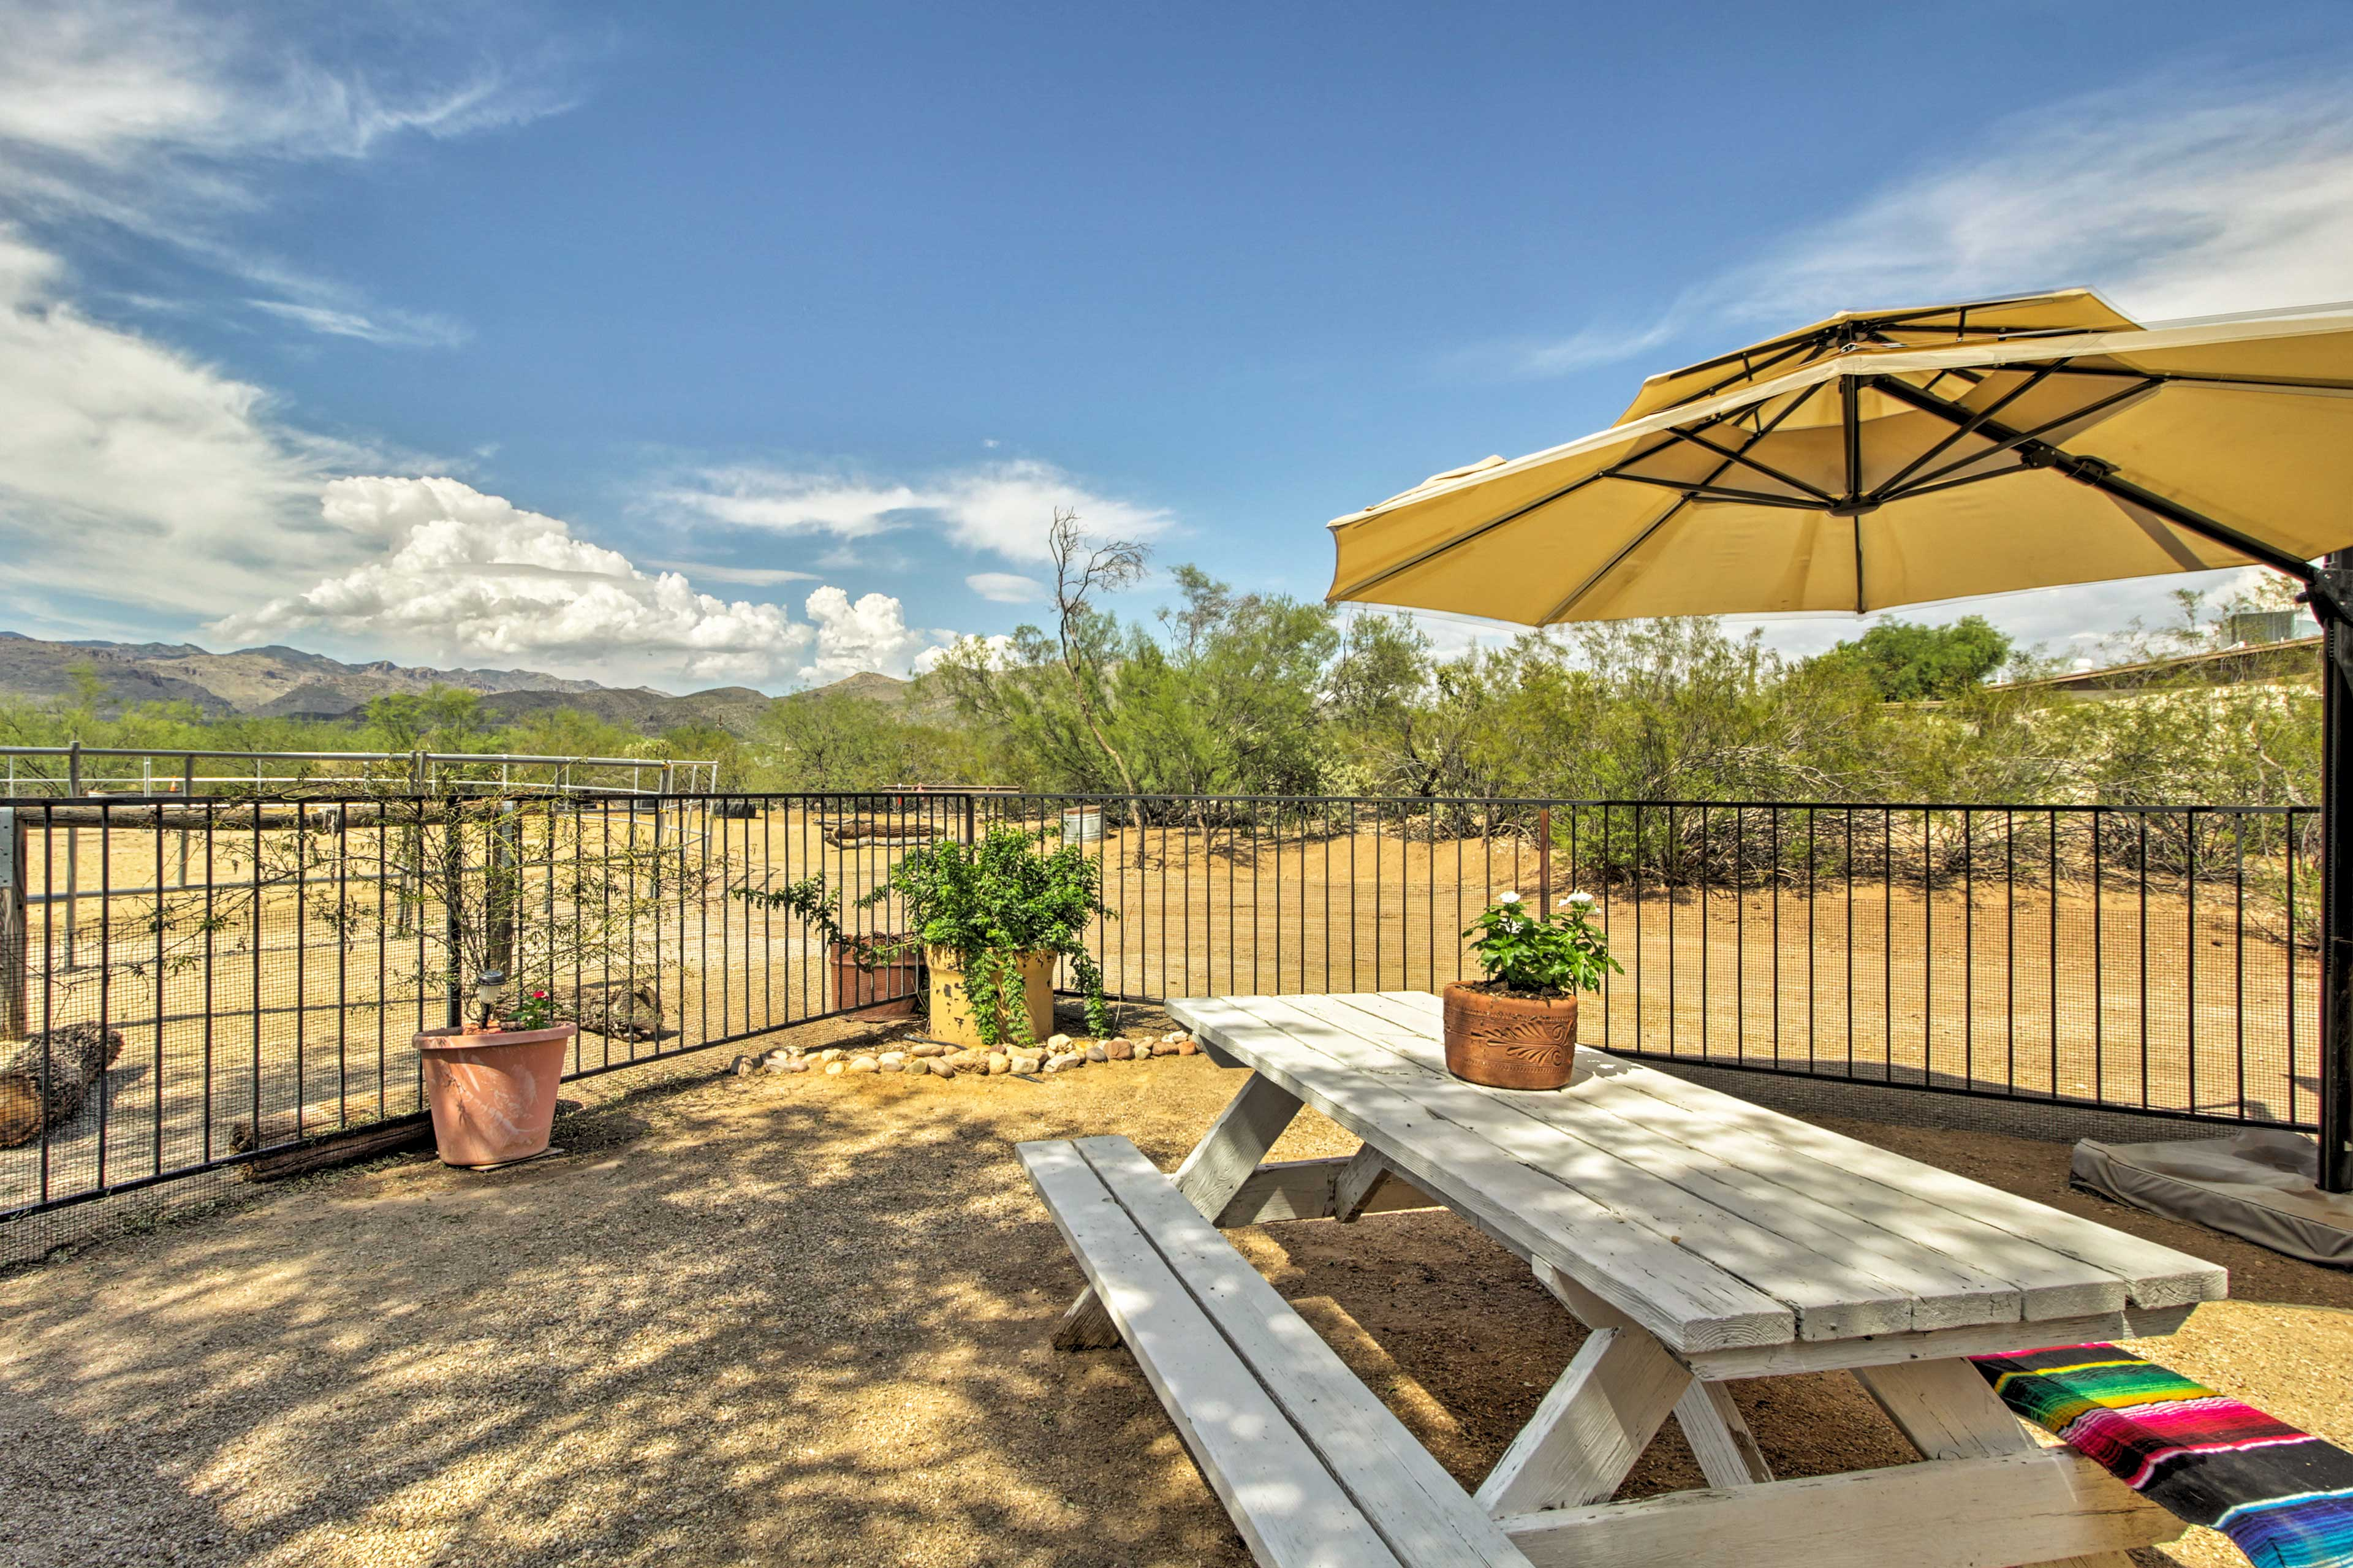 A Tucson desert escape awaits at 'All Tucked In!'